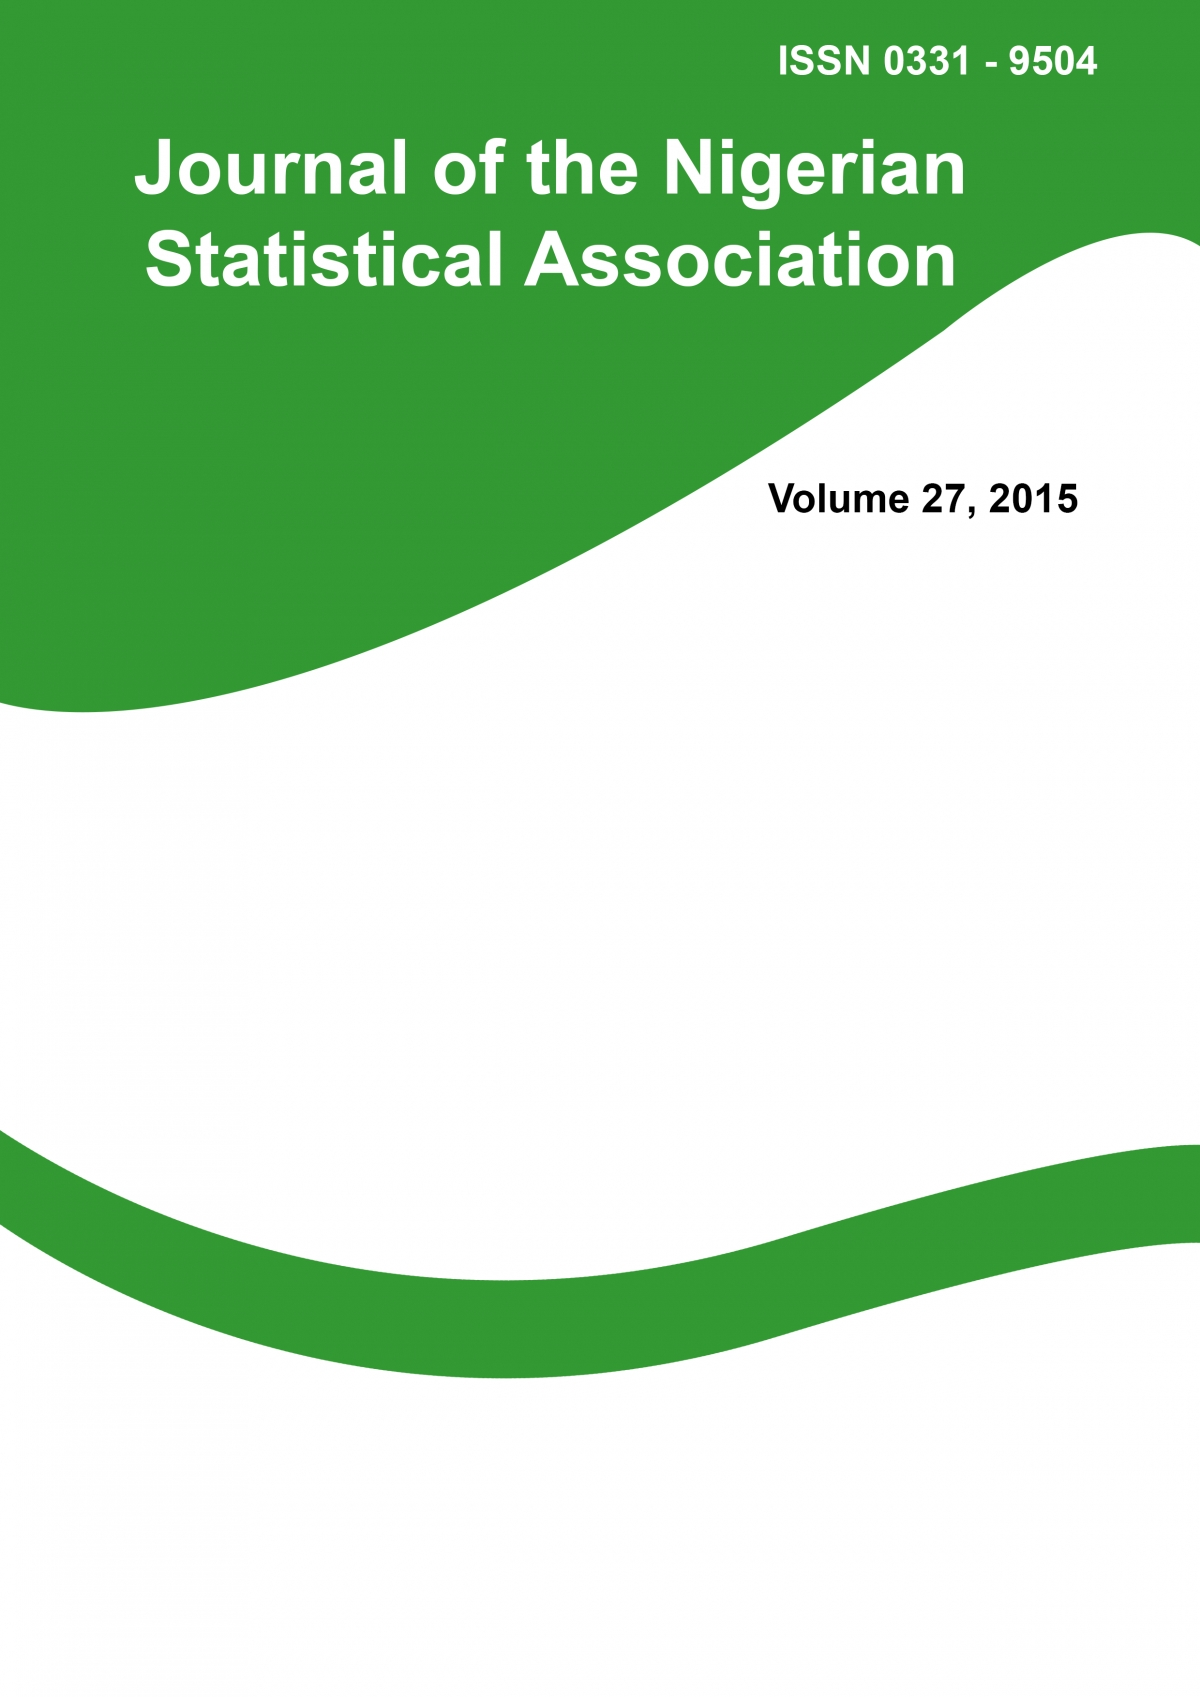 Journal of the Nigerian Statistical Association Vol. 27, 2015